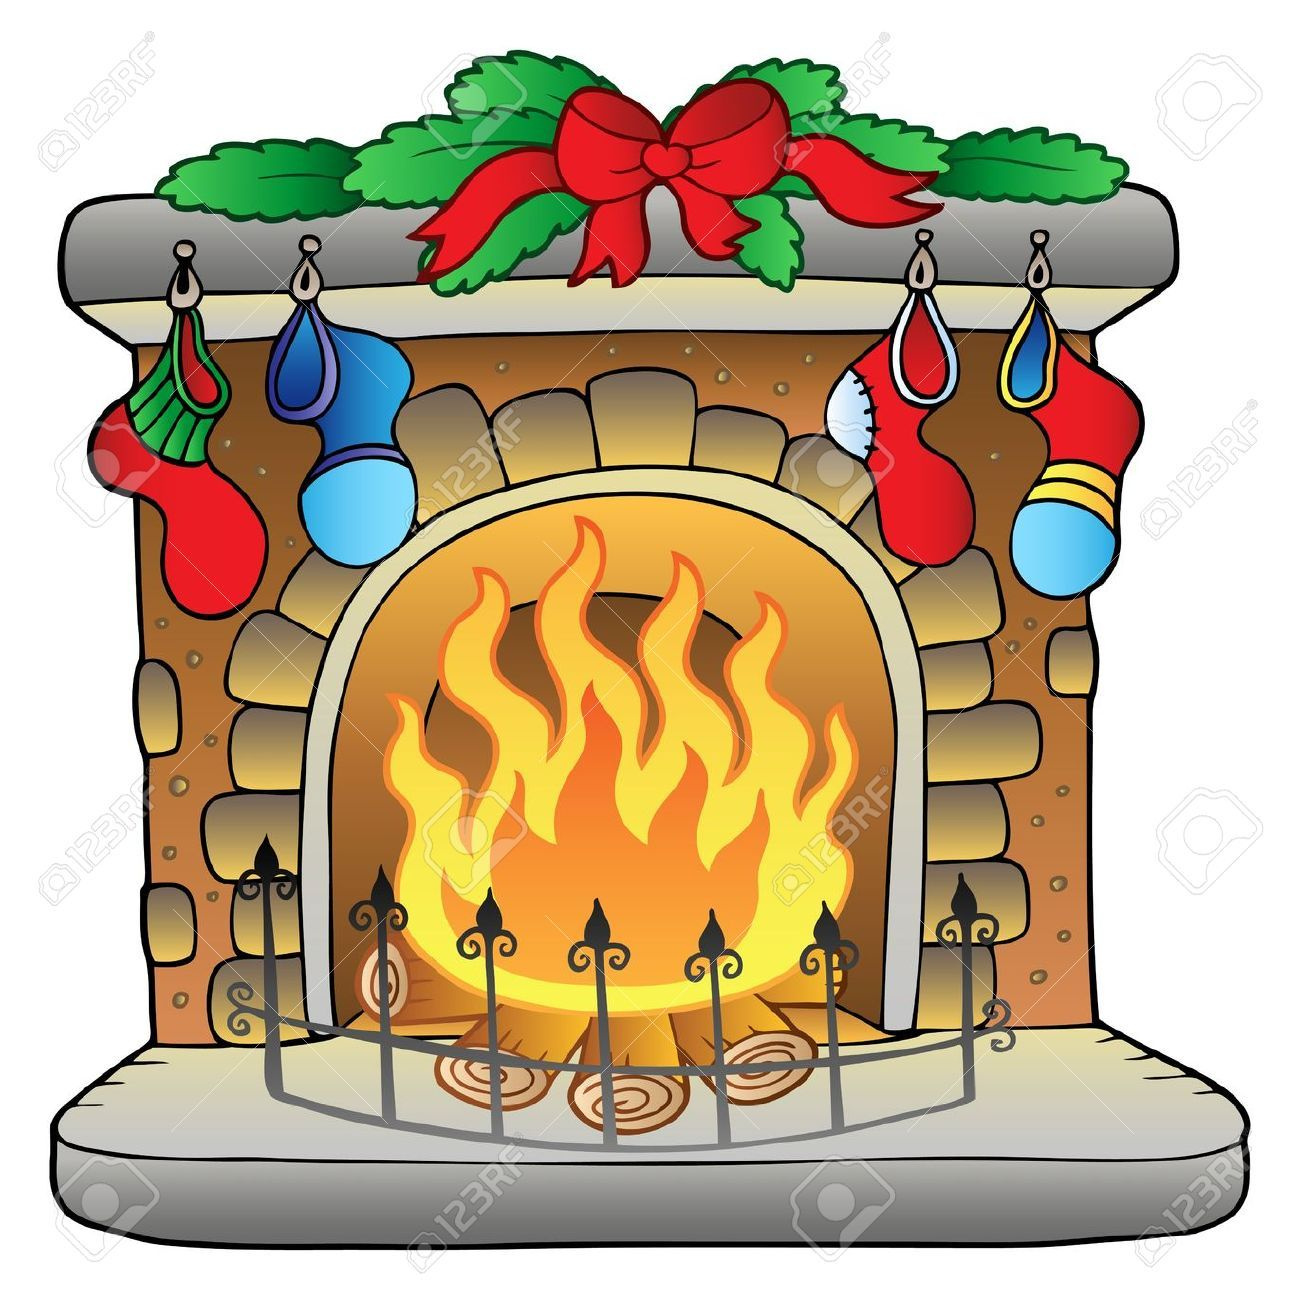 previews 123rf com images clairev clairev1012 clairev101200011 rh pinterest com christmas stocking fireplace clipart christmas tree and fireplace clipart